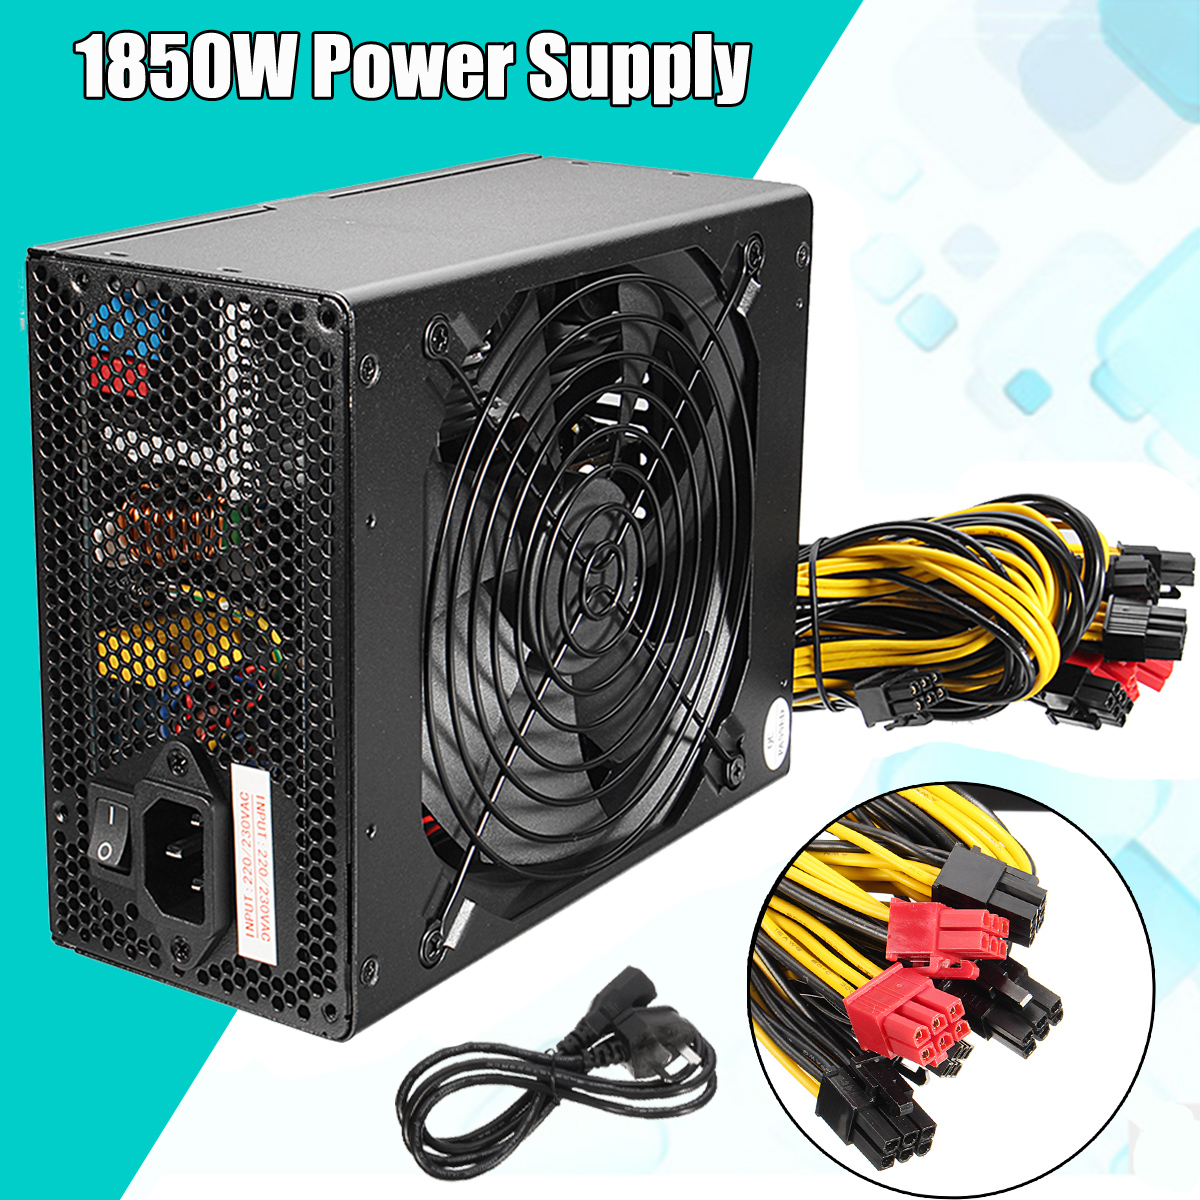 1850W MAX Miner Mining Power Supply 6 Pin For Antminer S9/S7/A7/A6/L3/R4 Bitcoin Coin Miner Computer Power Supply For BTC new max 1850w miner mining power supply 6 pin for antminer coin btb s9 s7 a7 a6 l3 r4 high quality computer power supply for btc